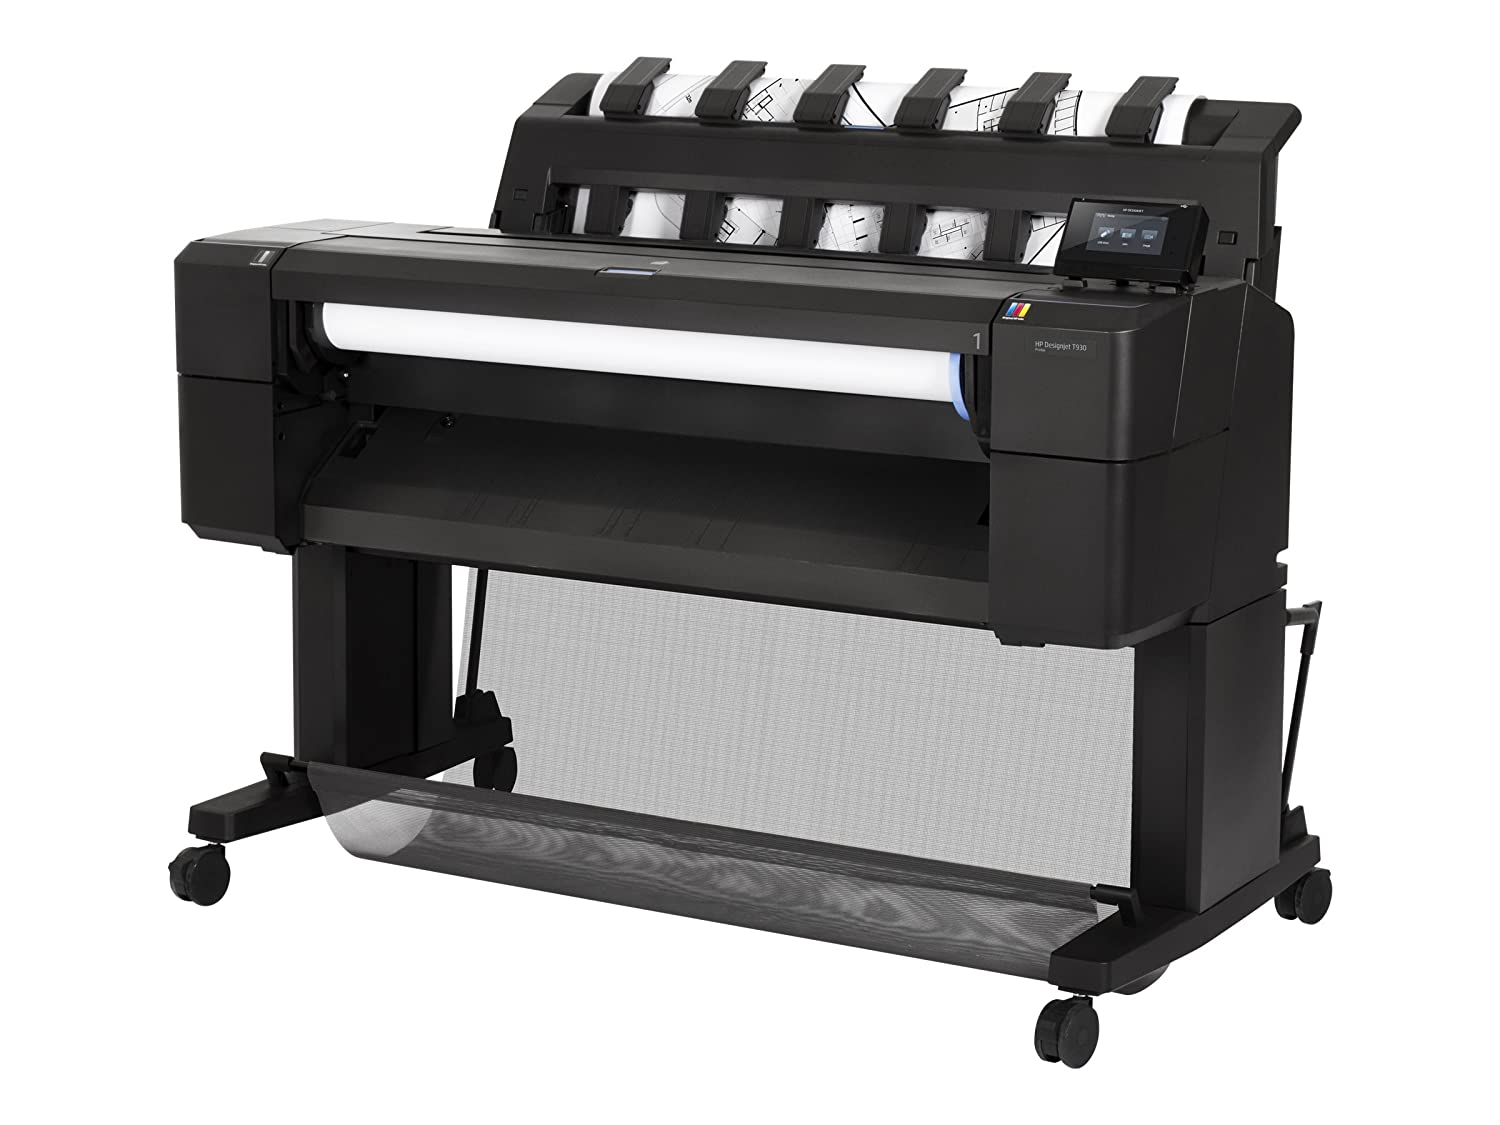 HP Designjet T930 - Imprimante grand format (HP-GL / 2, HP-RTL, TIFF, URF, 2400 x 1200 DPI, Cyan, Gris, Magenta, Noir mat, Photo Noir, Jaune, A0 (841 x 1189 mm) 3 x 22 x 3 x 3, Injection d'encre thermique) Injection d' encre thermique) L2Y21A